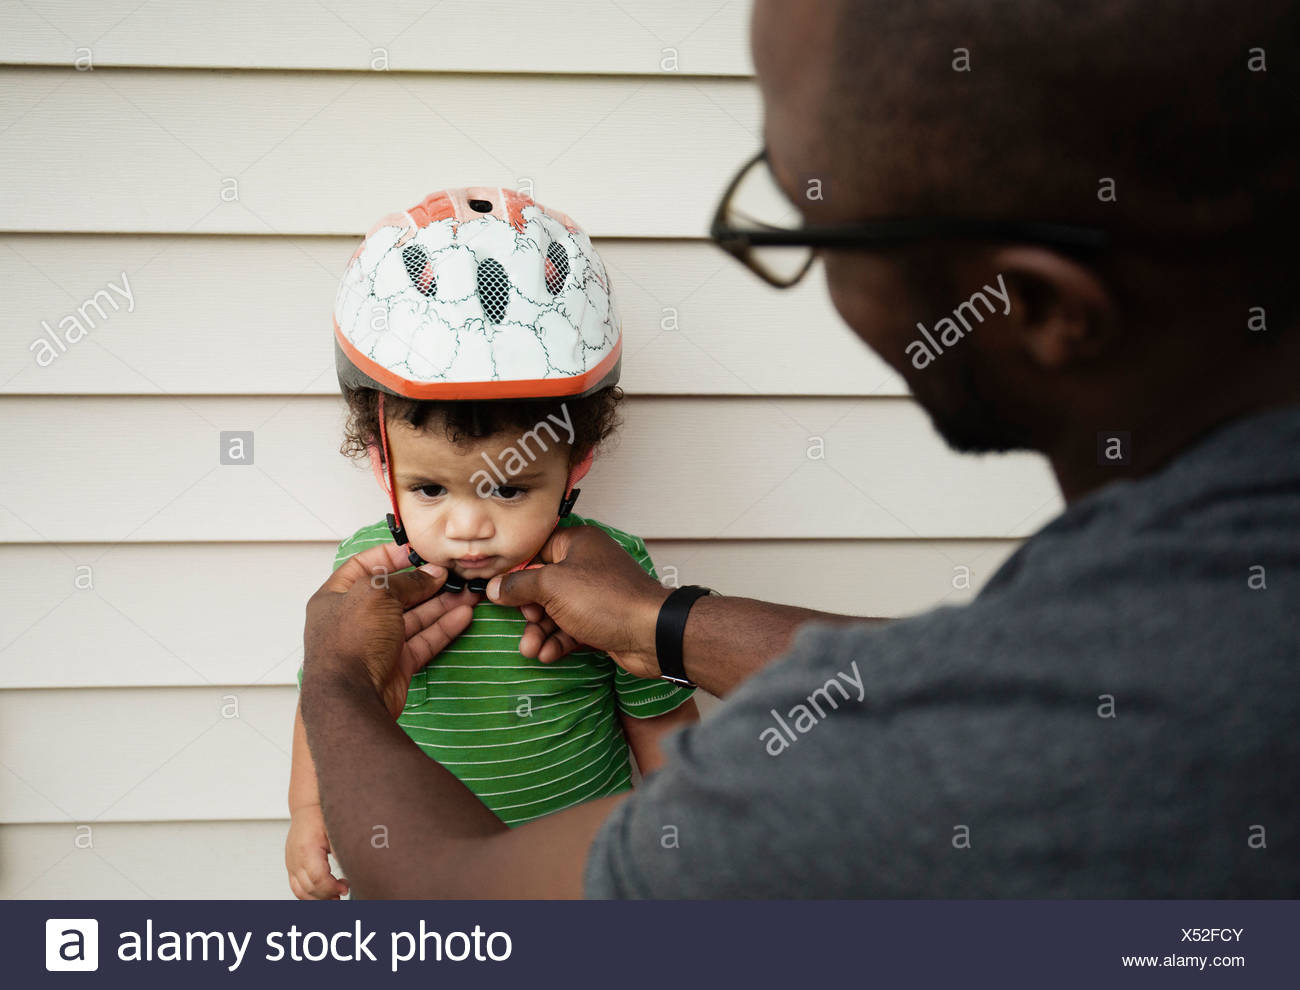 Father putting on helmet for son - Stock Image